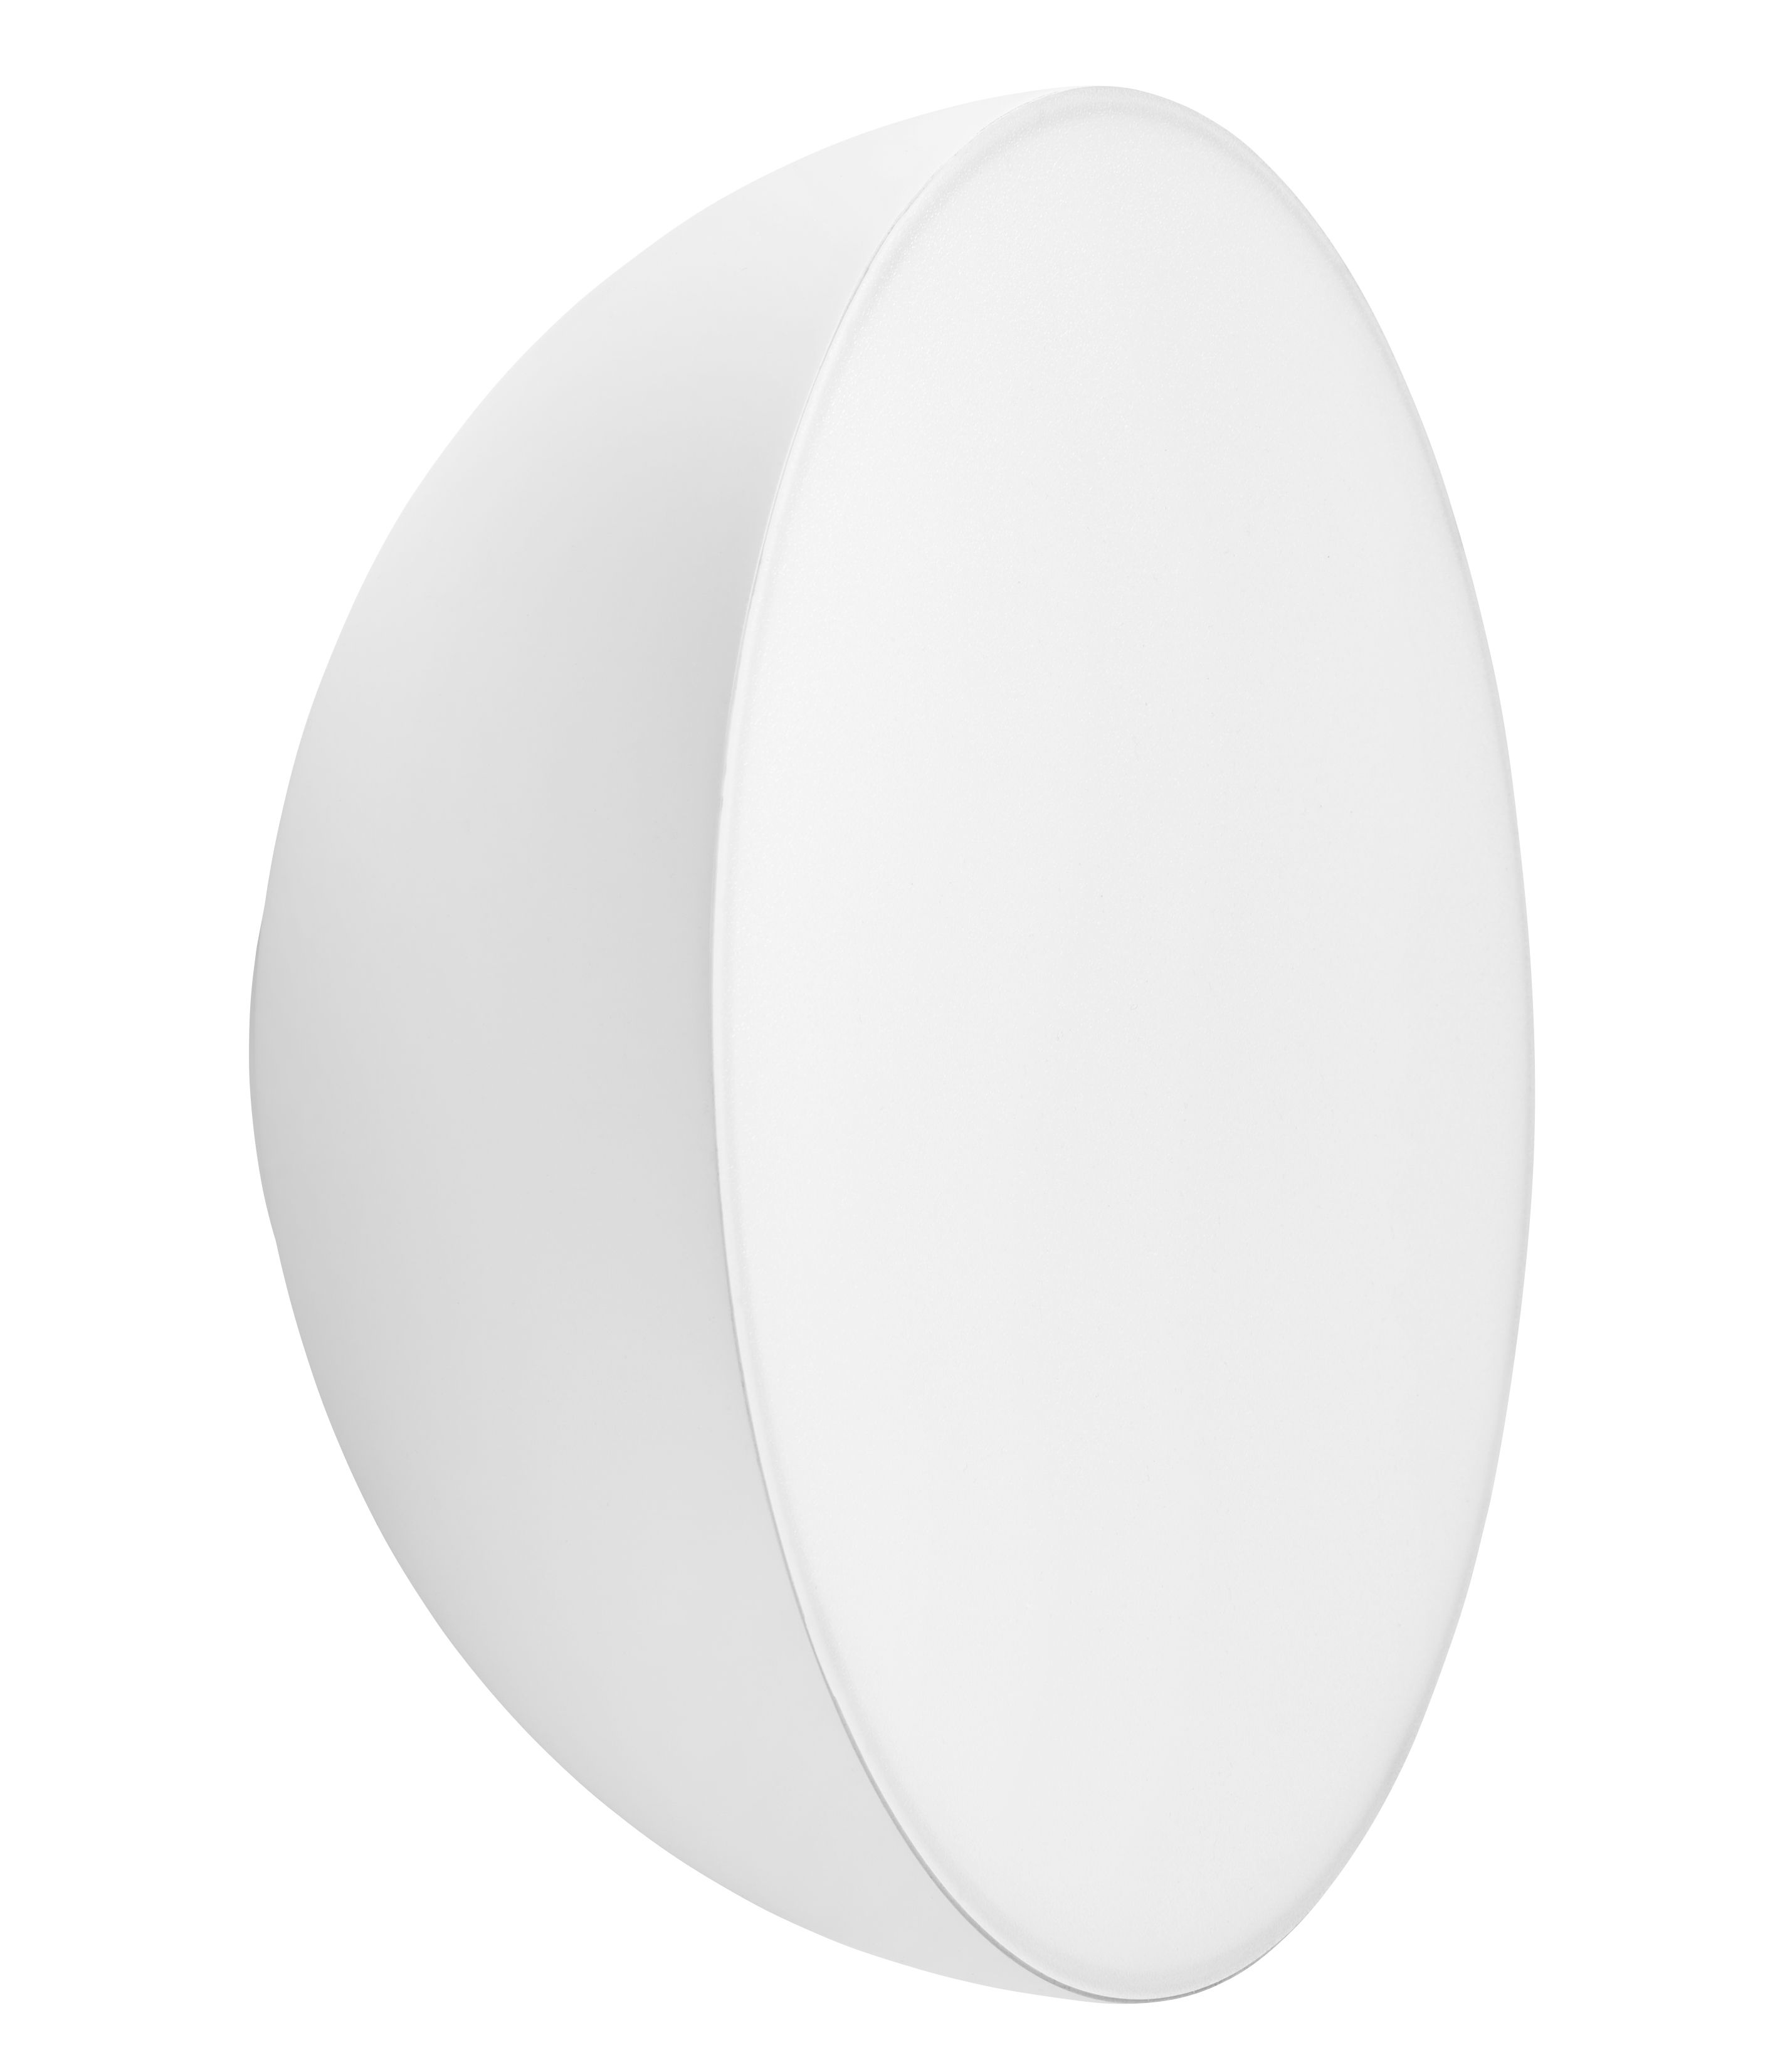 Lighting - Wall Lights - Passepartout JH12 Wall light - LED - Ø 28 x H 12,5 cm by &tradition - Matt white - Lacquered metal, Polycarbonate